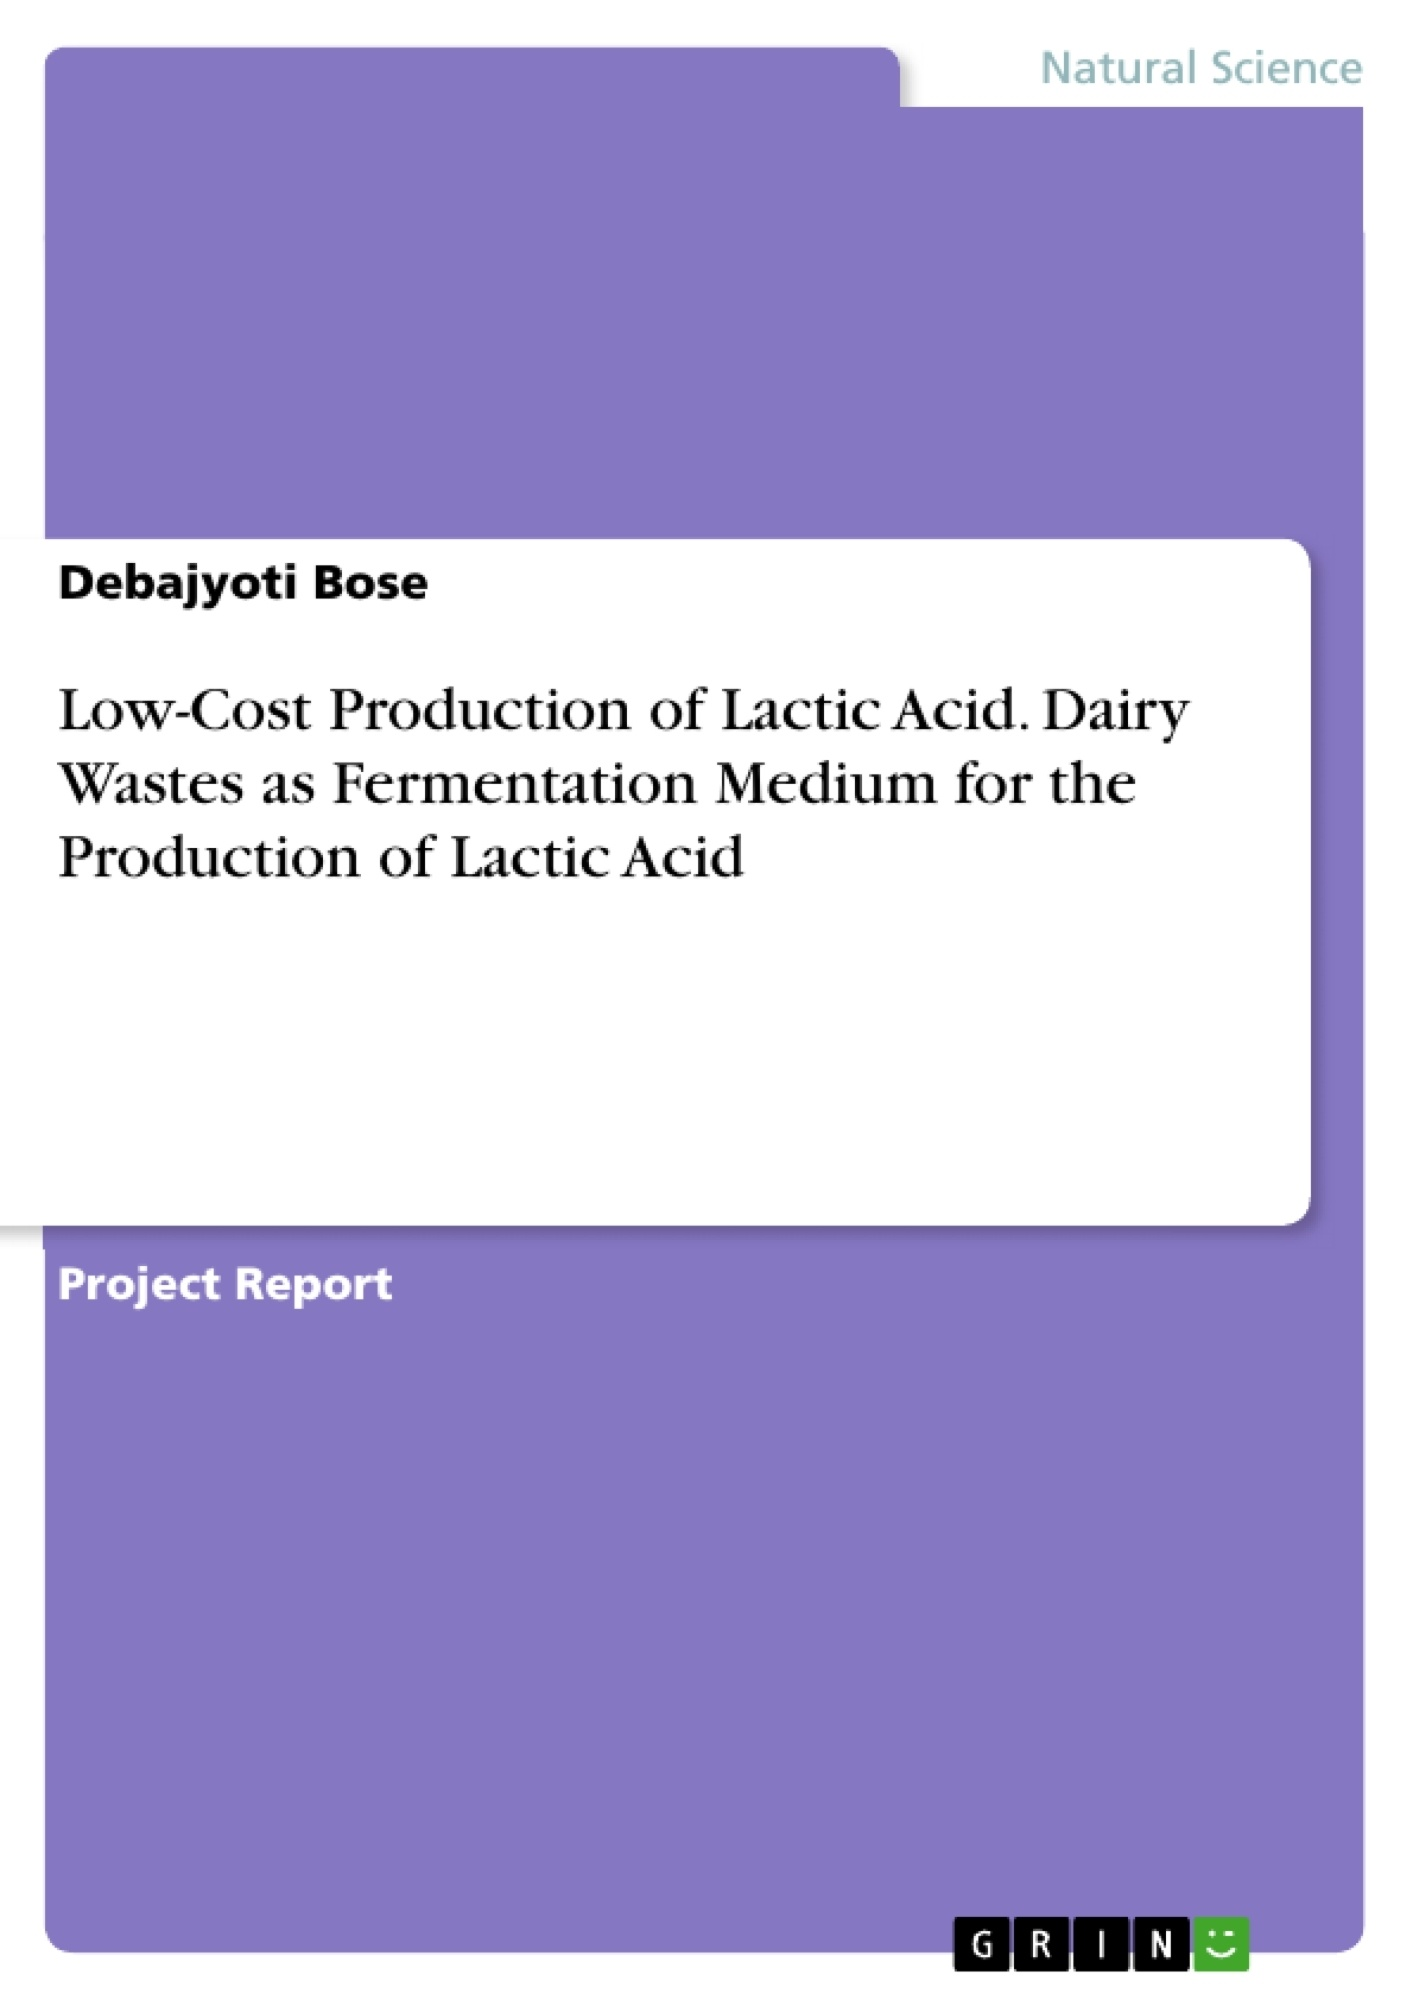 Title: Low-Cost Production of Lactic Acid. Dairy Wastes as Fermentation Medium for the Production of Lactic Acid